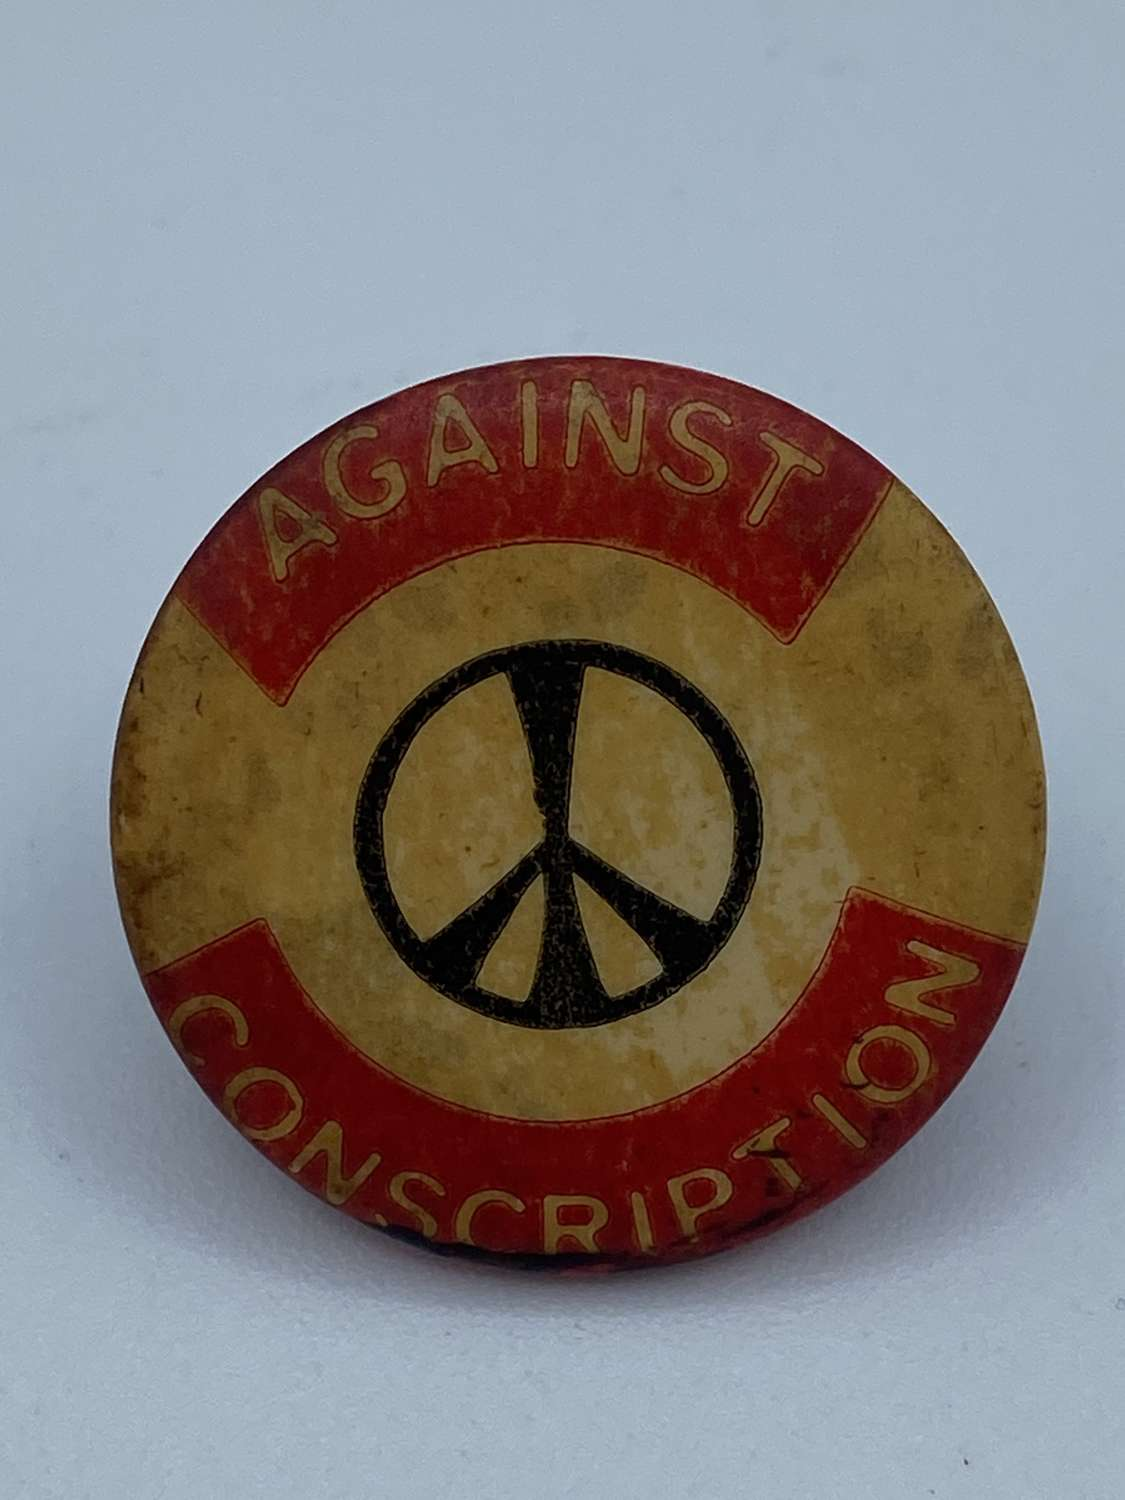 Vintage 1960s CND Against Conscription Political Campaign Badge